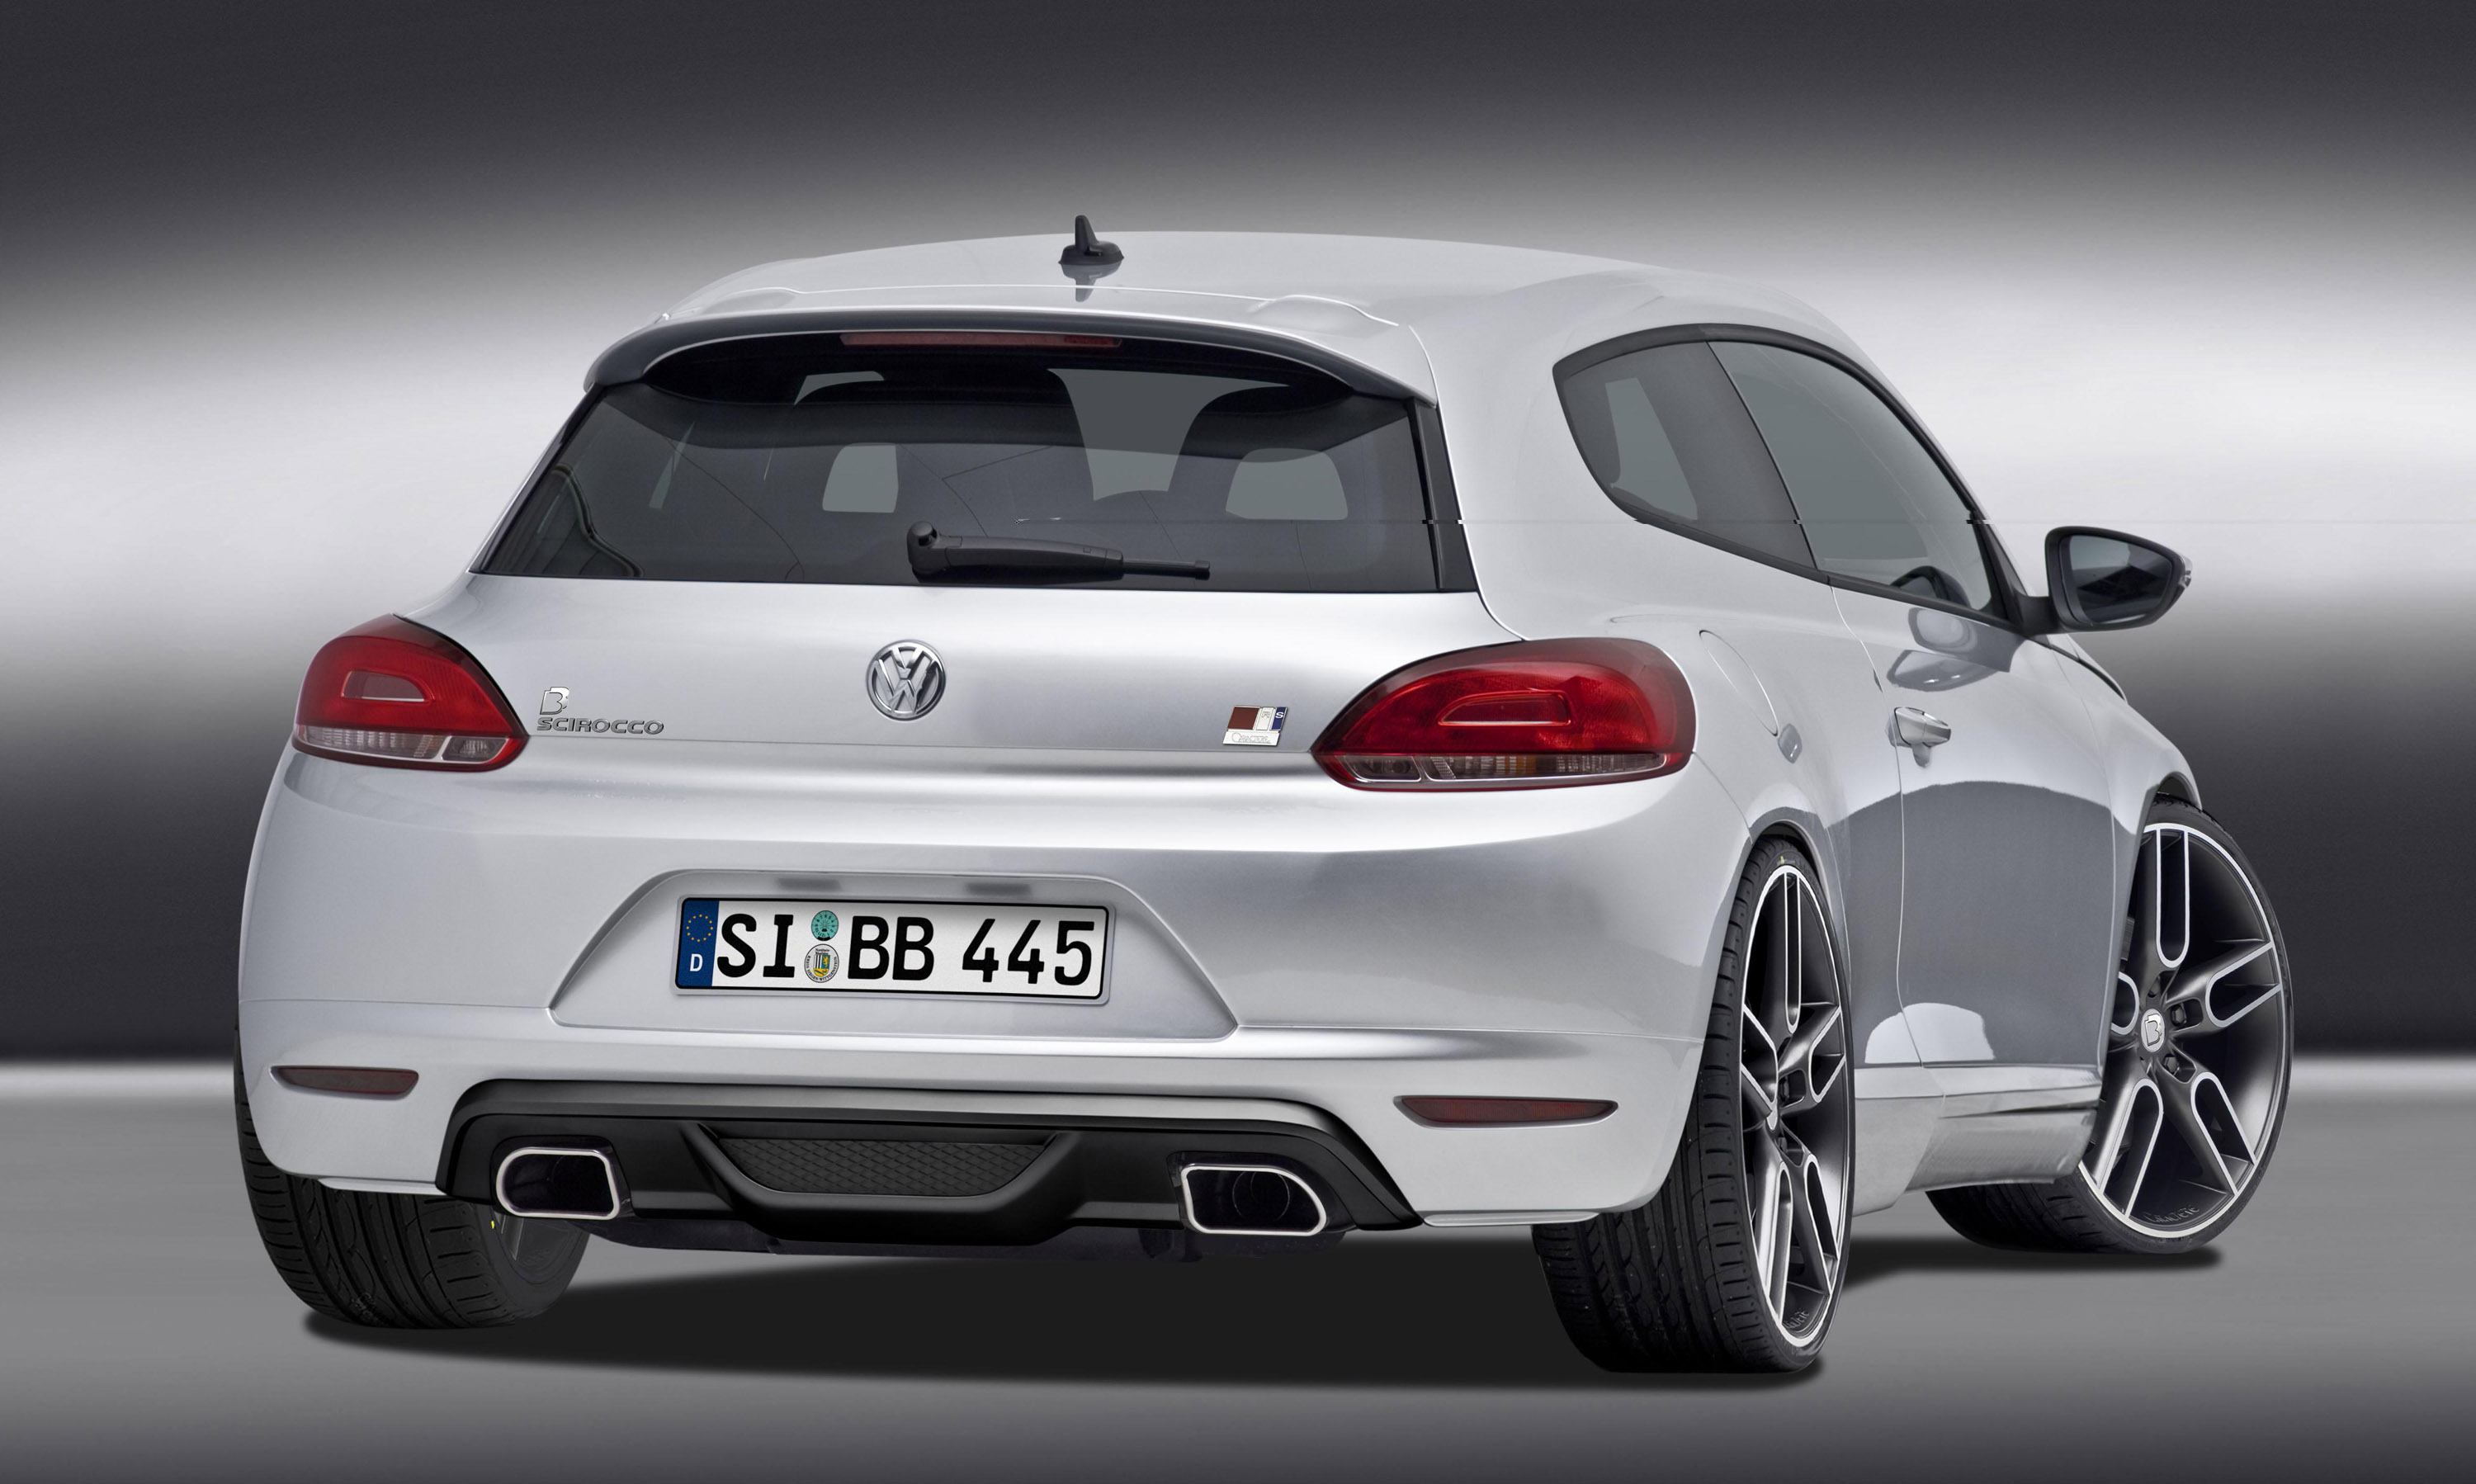 B&B VW Scirocco – Sports-Coupe up to 350hp / 450Nm